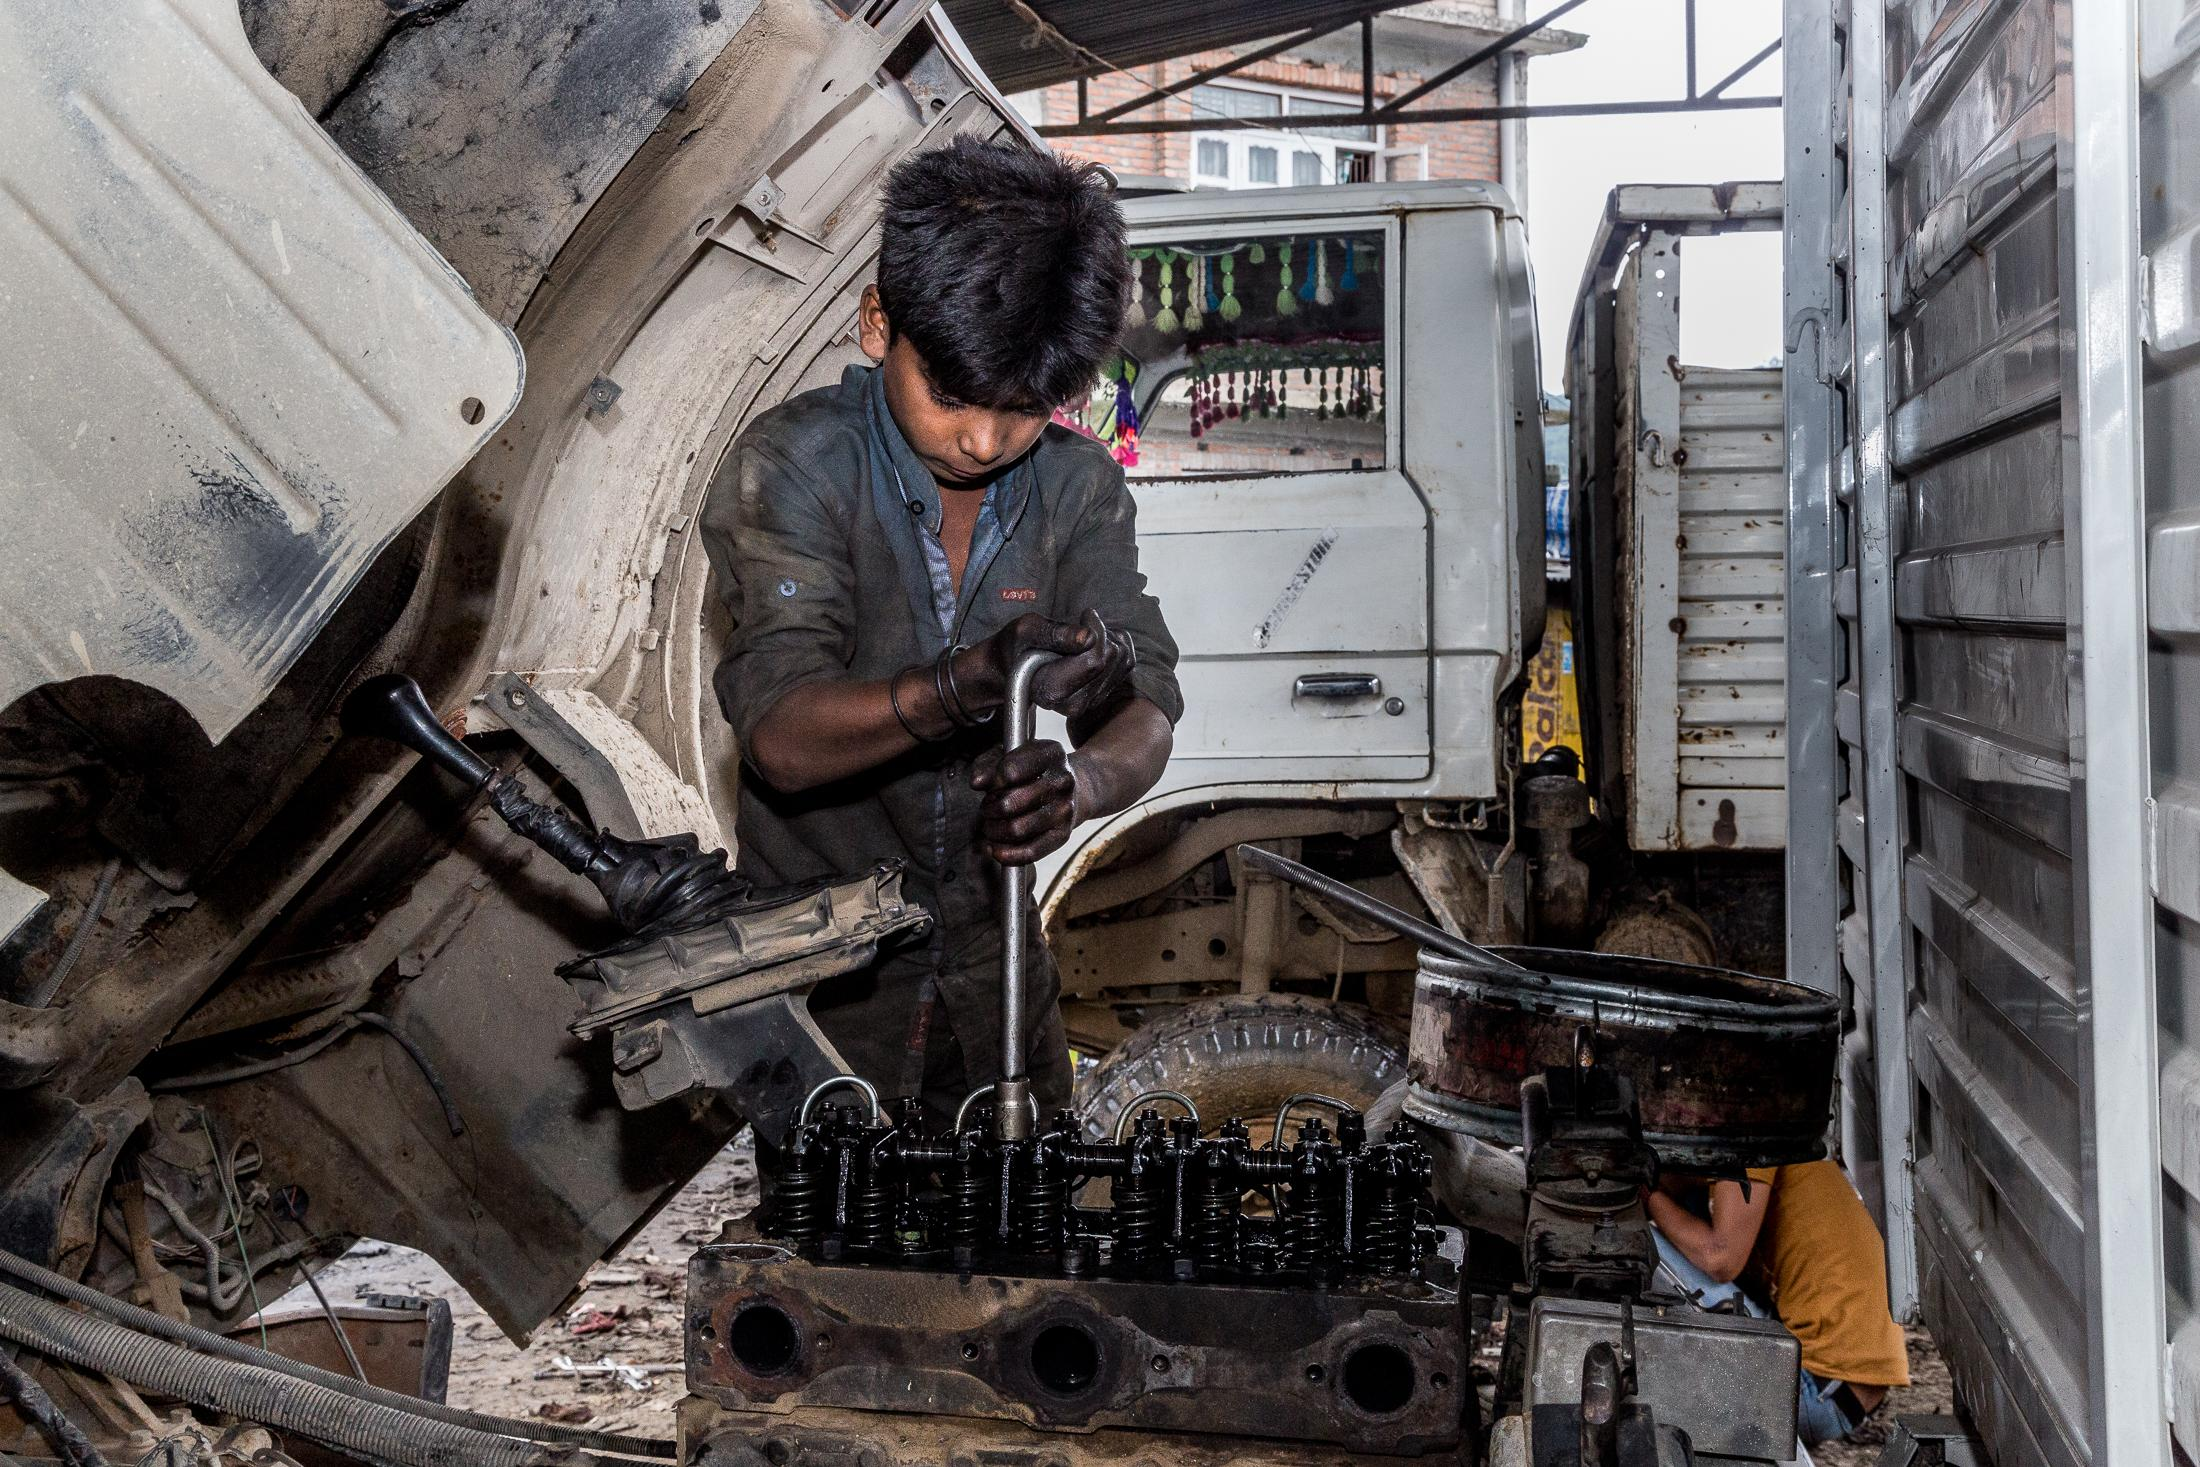 PANAUTI, NEPAL - AUGUST 07, 2015: 12 years-old Mohammad Intaf Alan repairs a truck in the garage that he works on August 07, 2015 in Panauti, Nepal. Photo: © Omar Havana for ILO